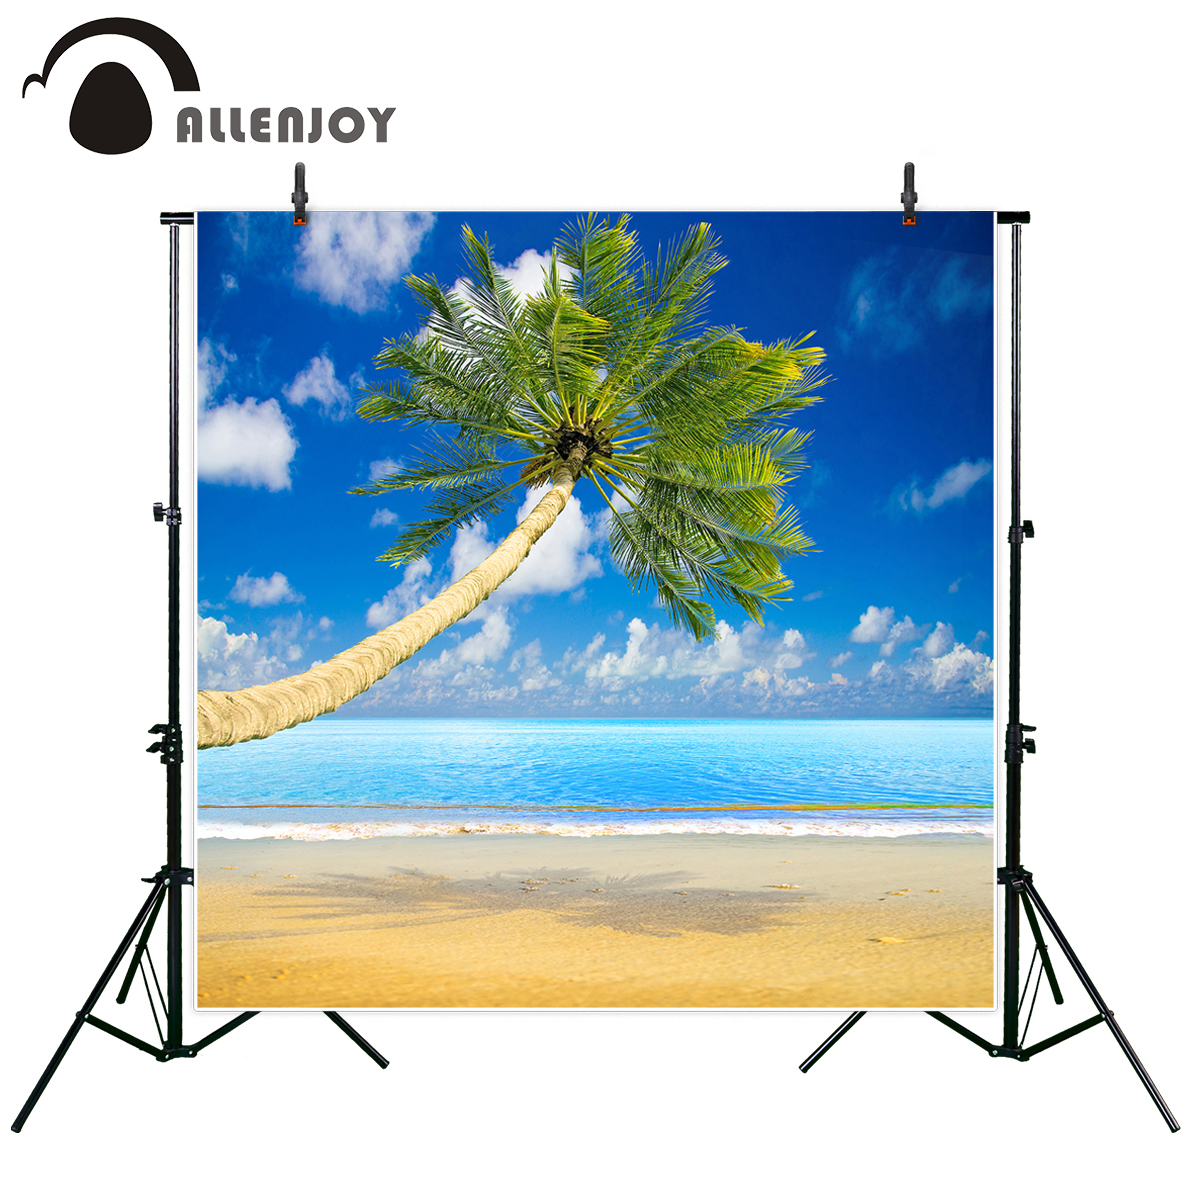 Allenjoy photographic background leaf beach Caribbean island sun sea tree cloud vacation tourism photocall professional custom image